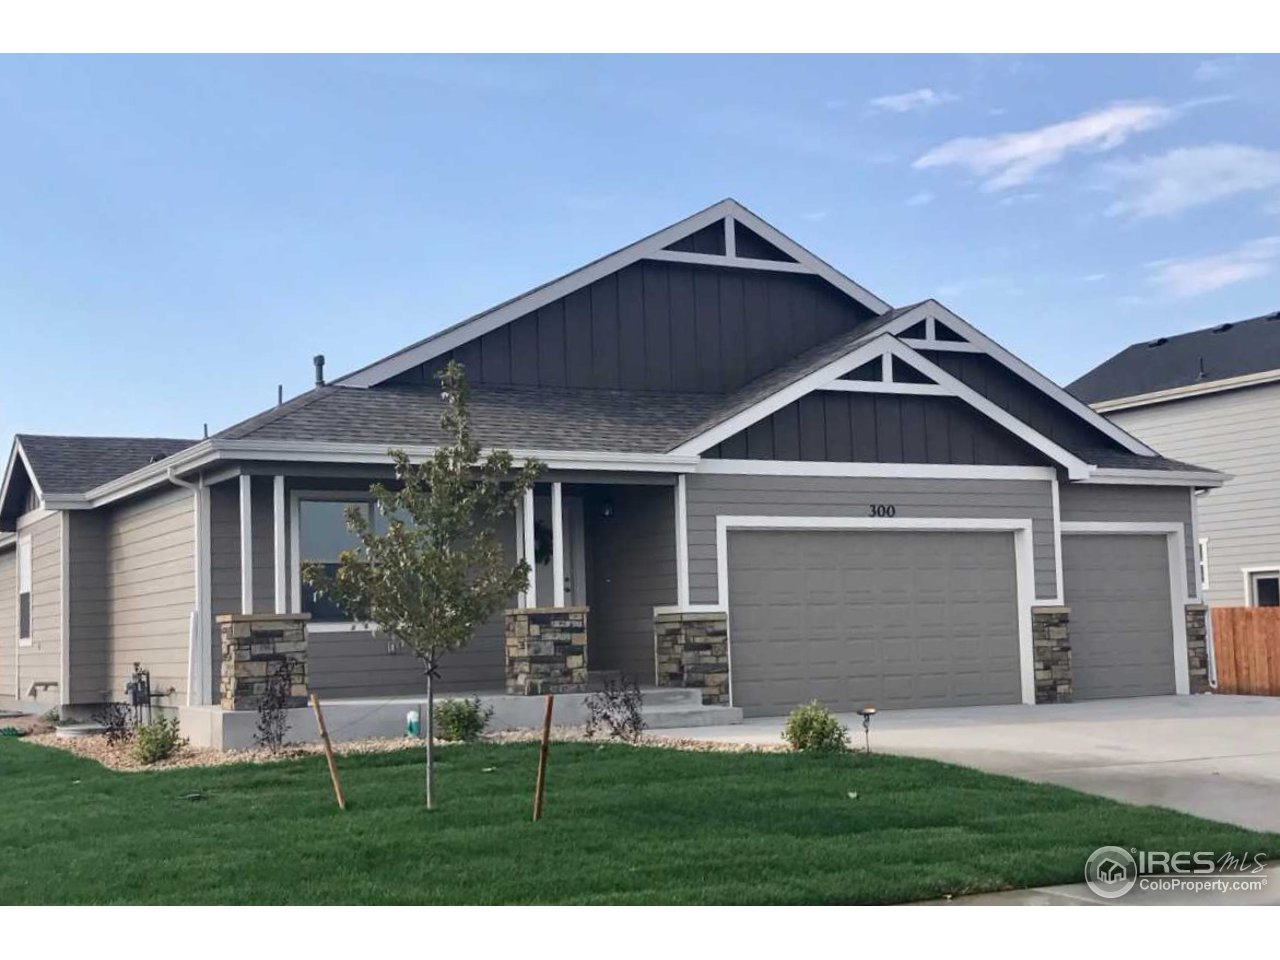 300 11 Ave, Wiggins, CO 80654